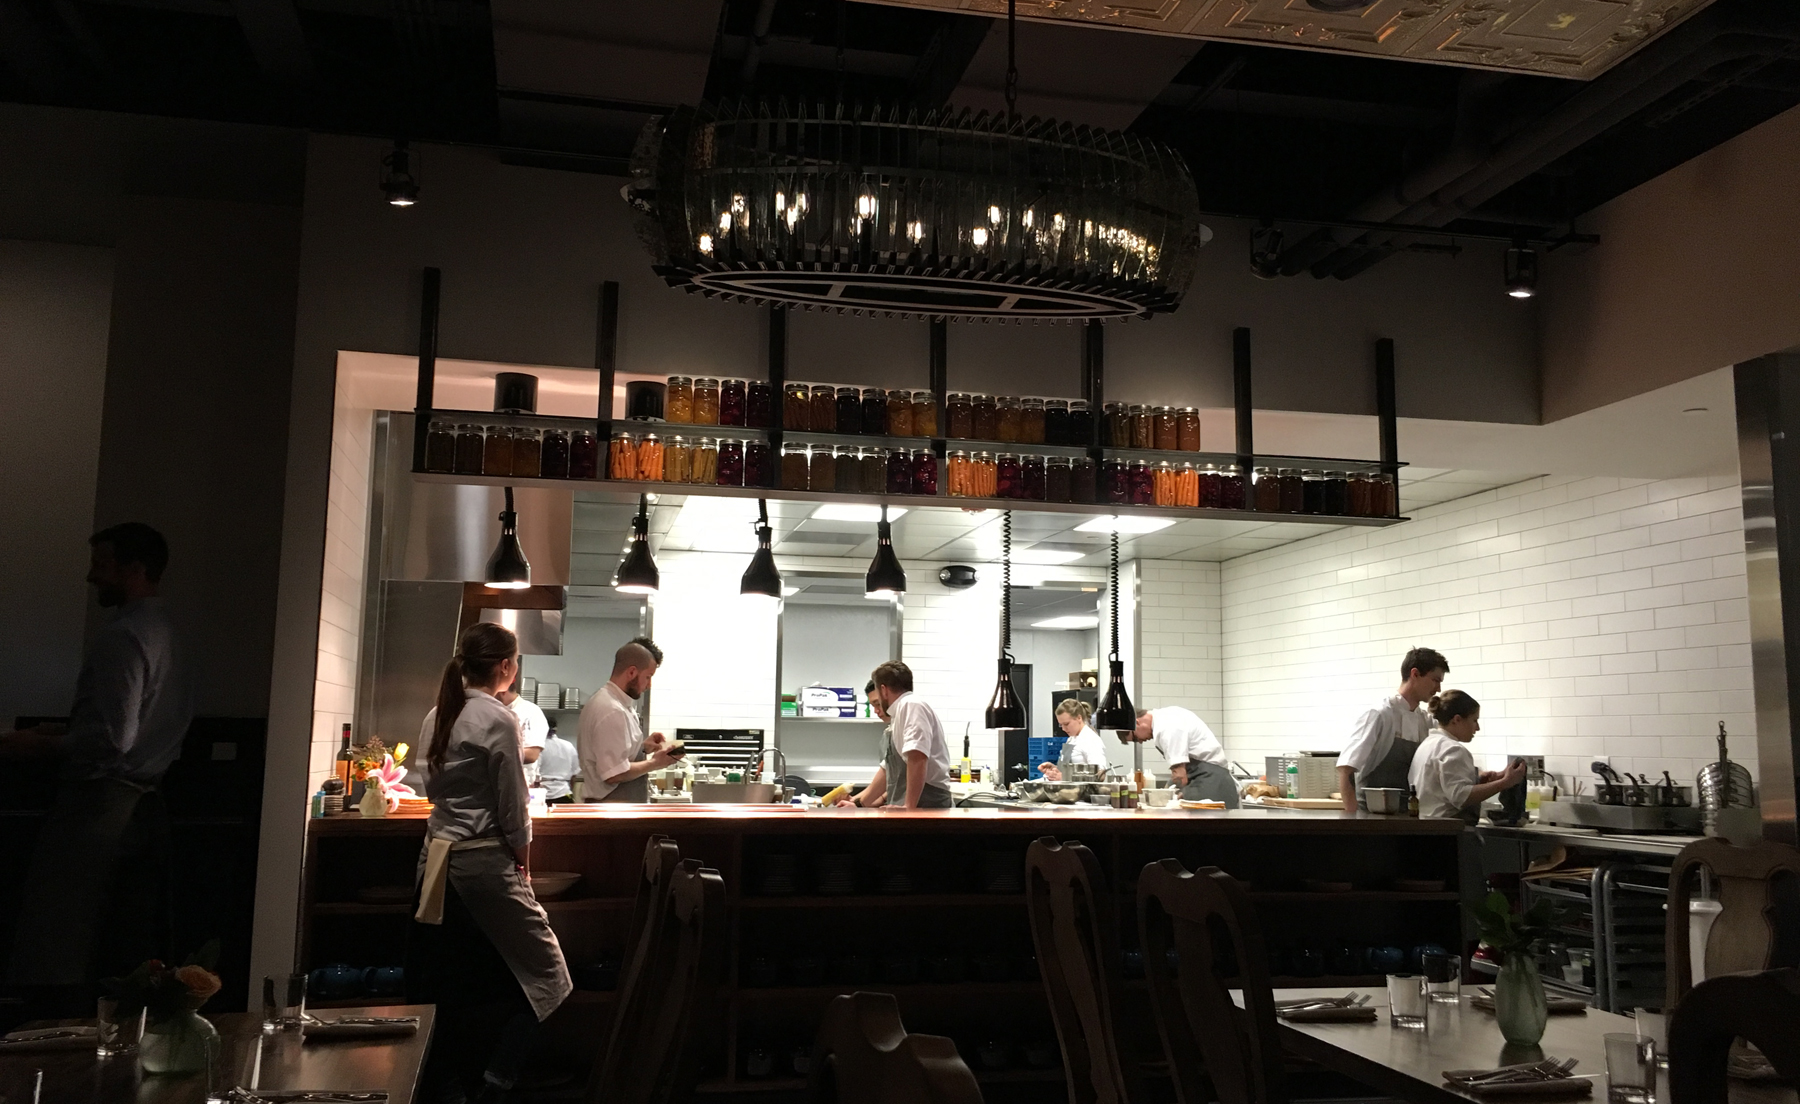 open kitchen design restaurant beware of the open kitchen tundra restaurant supply 147